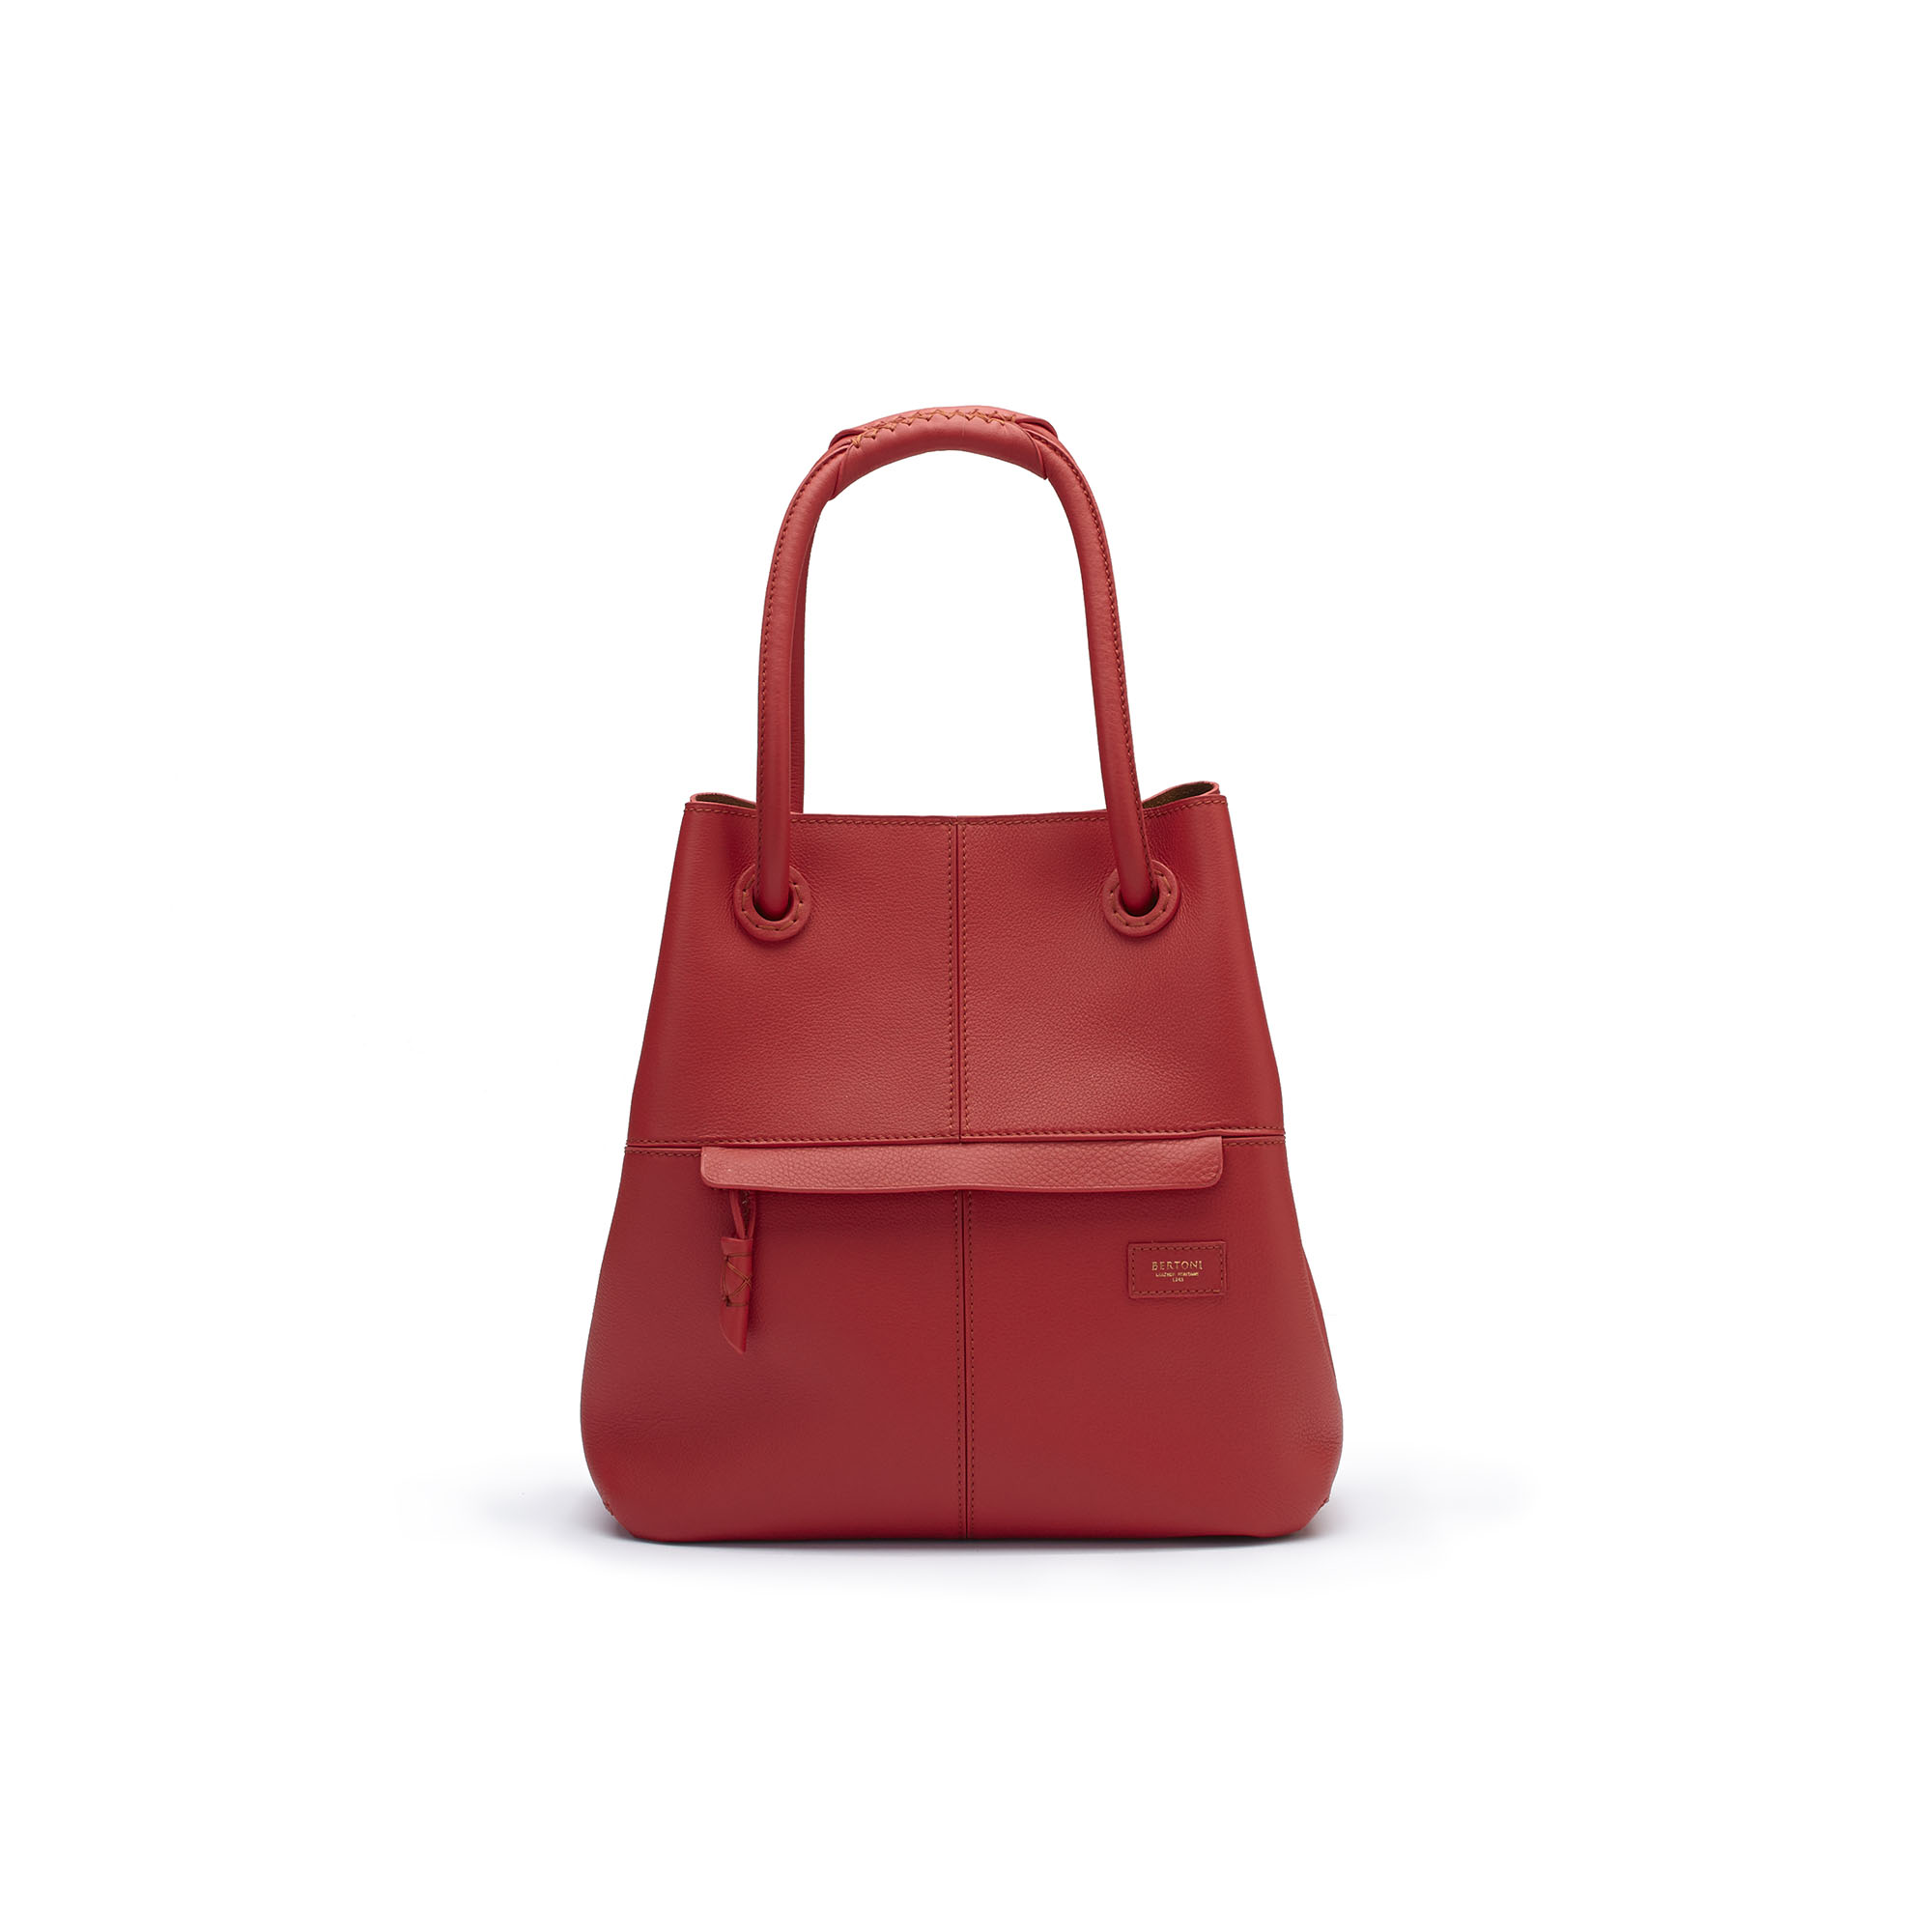 The red soft calf Satchel bag by Bertoni 1949 01